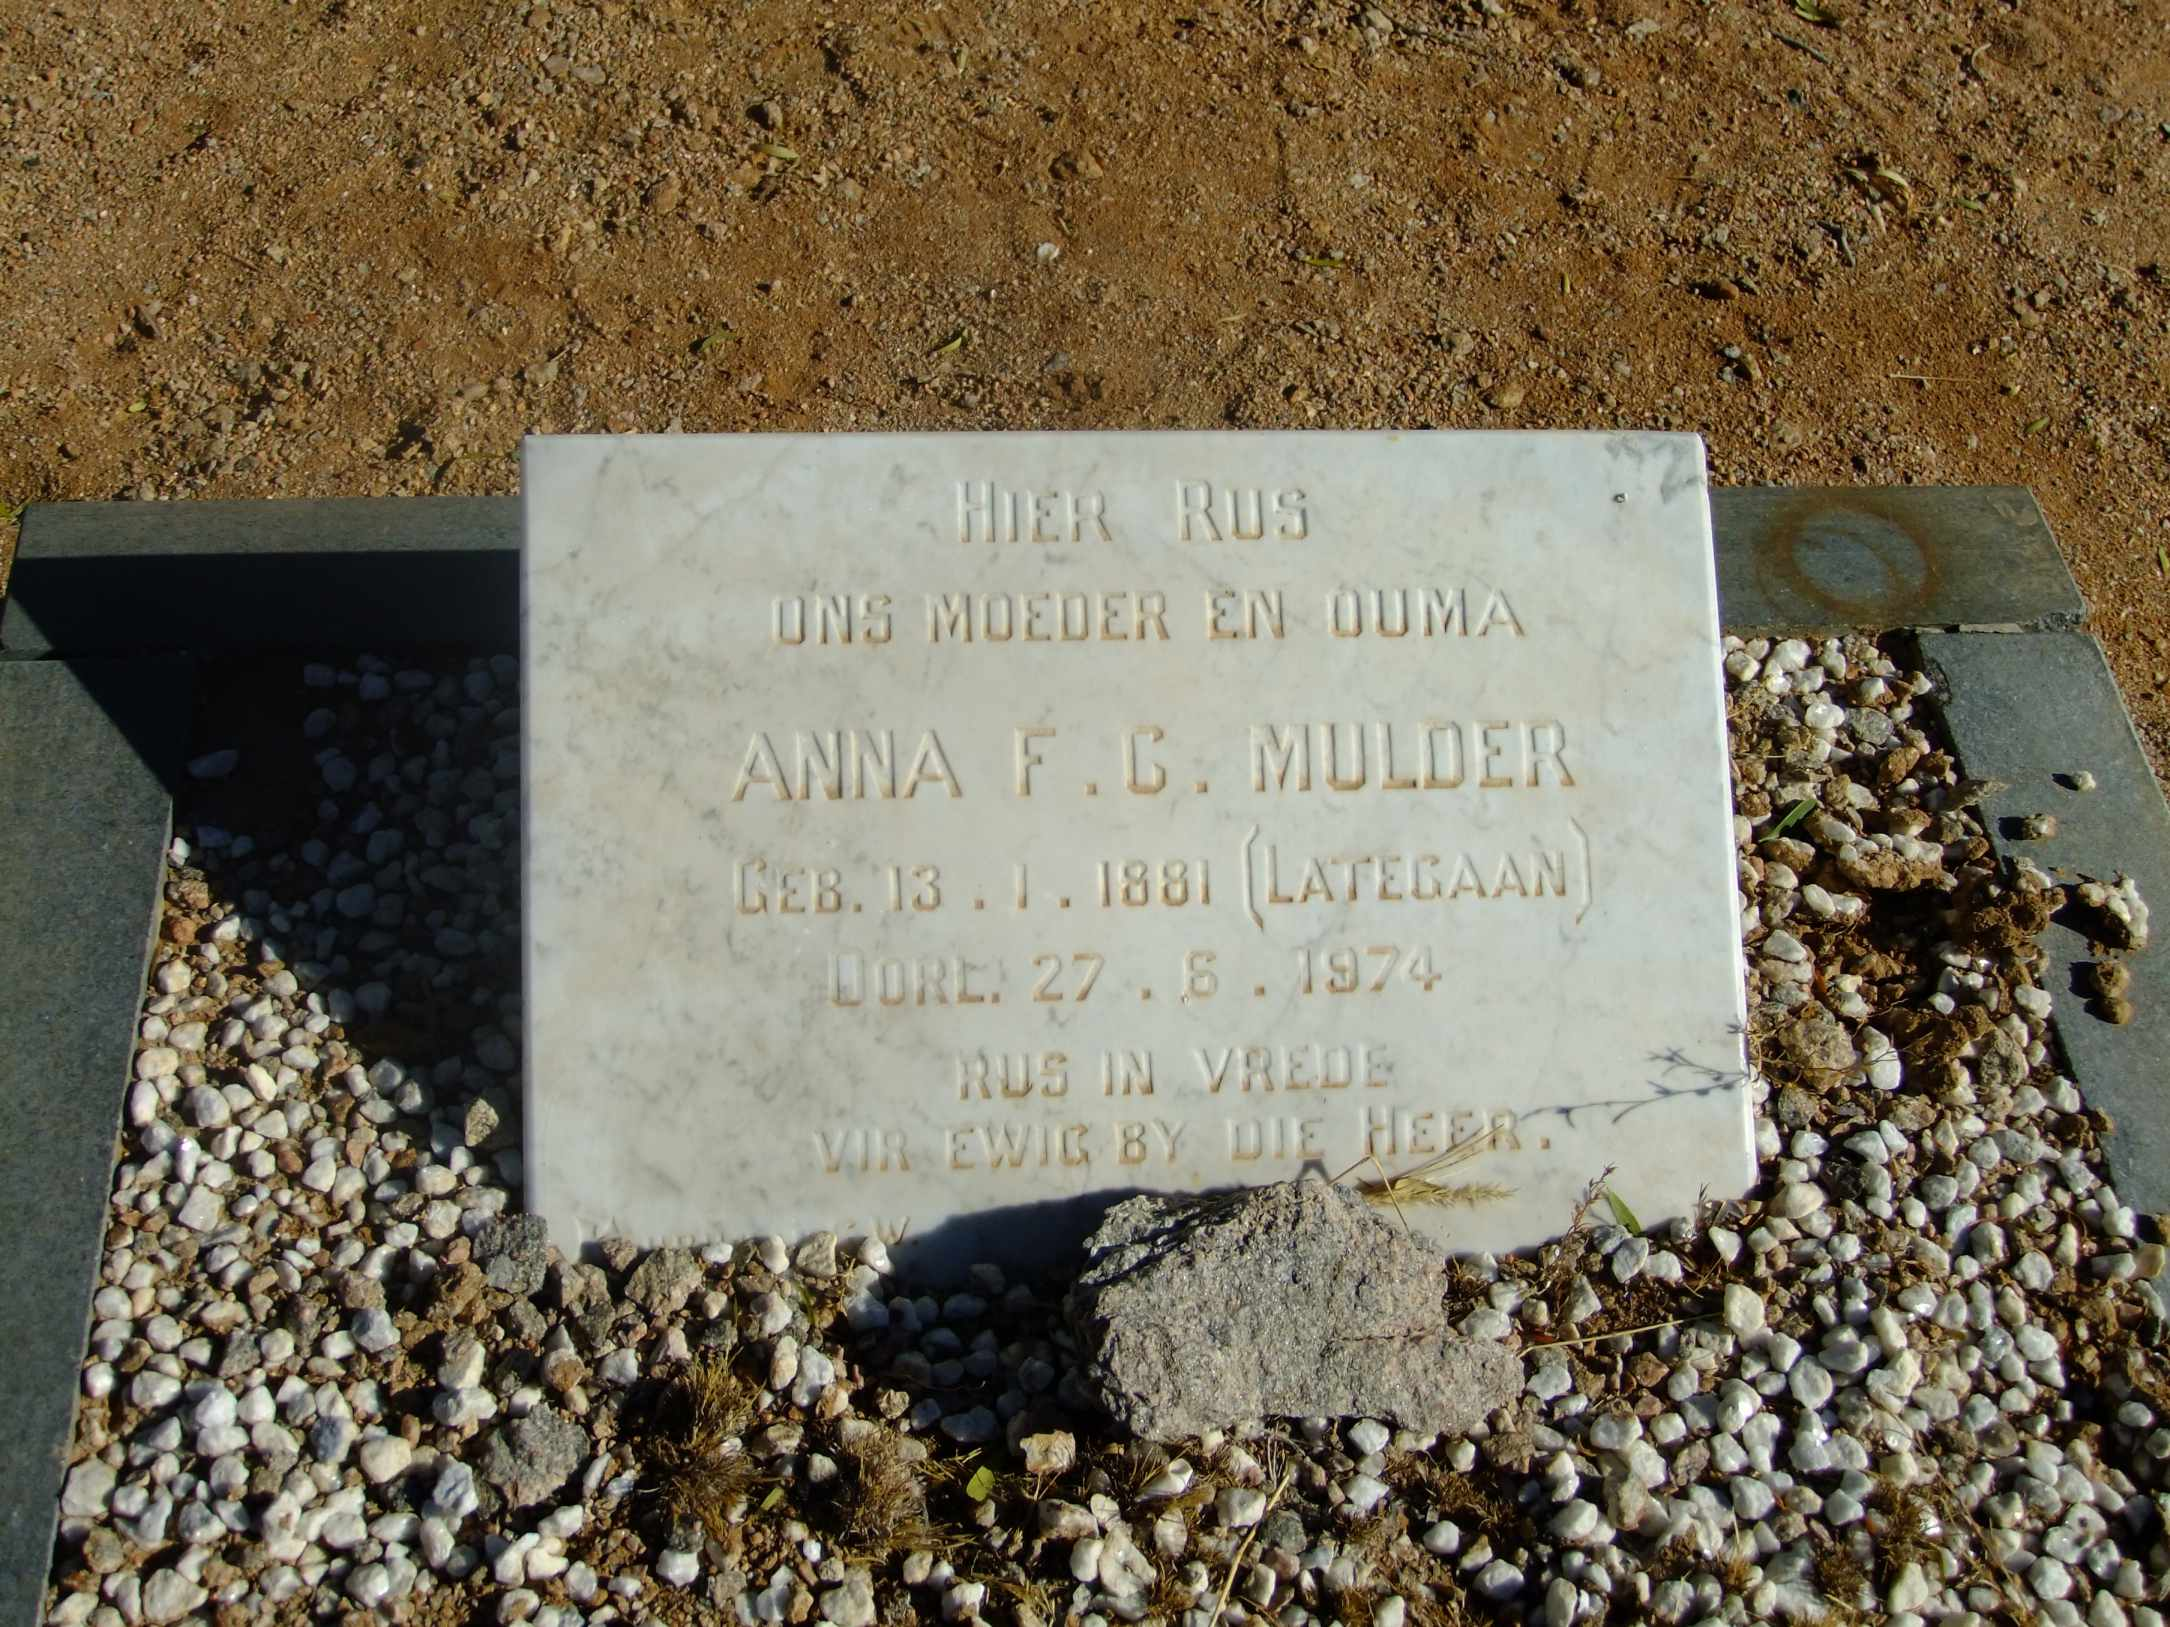 Mulder, Anna FC nee Lategan born 13 January 1881 died 27 June 1974